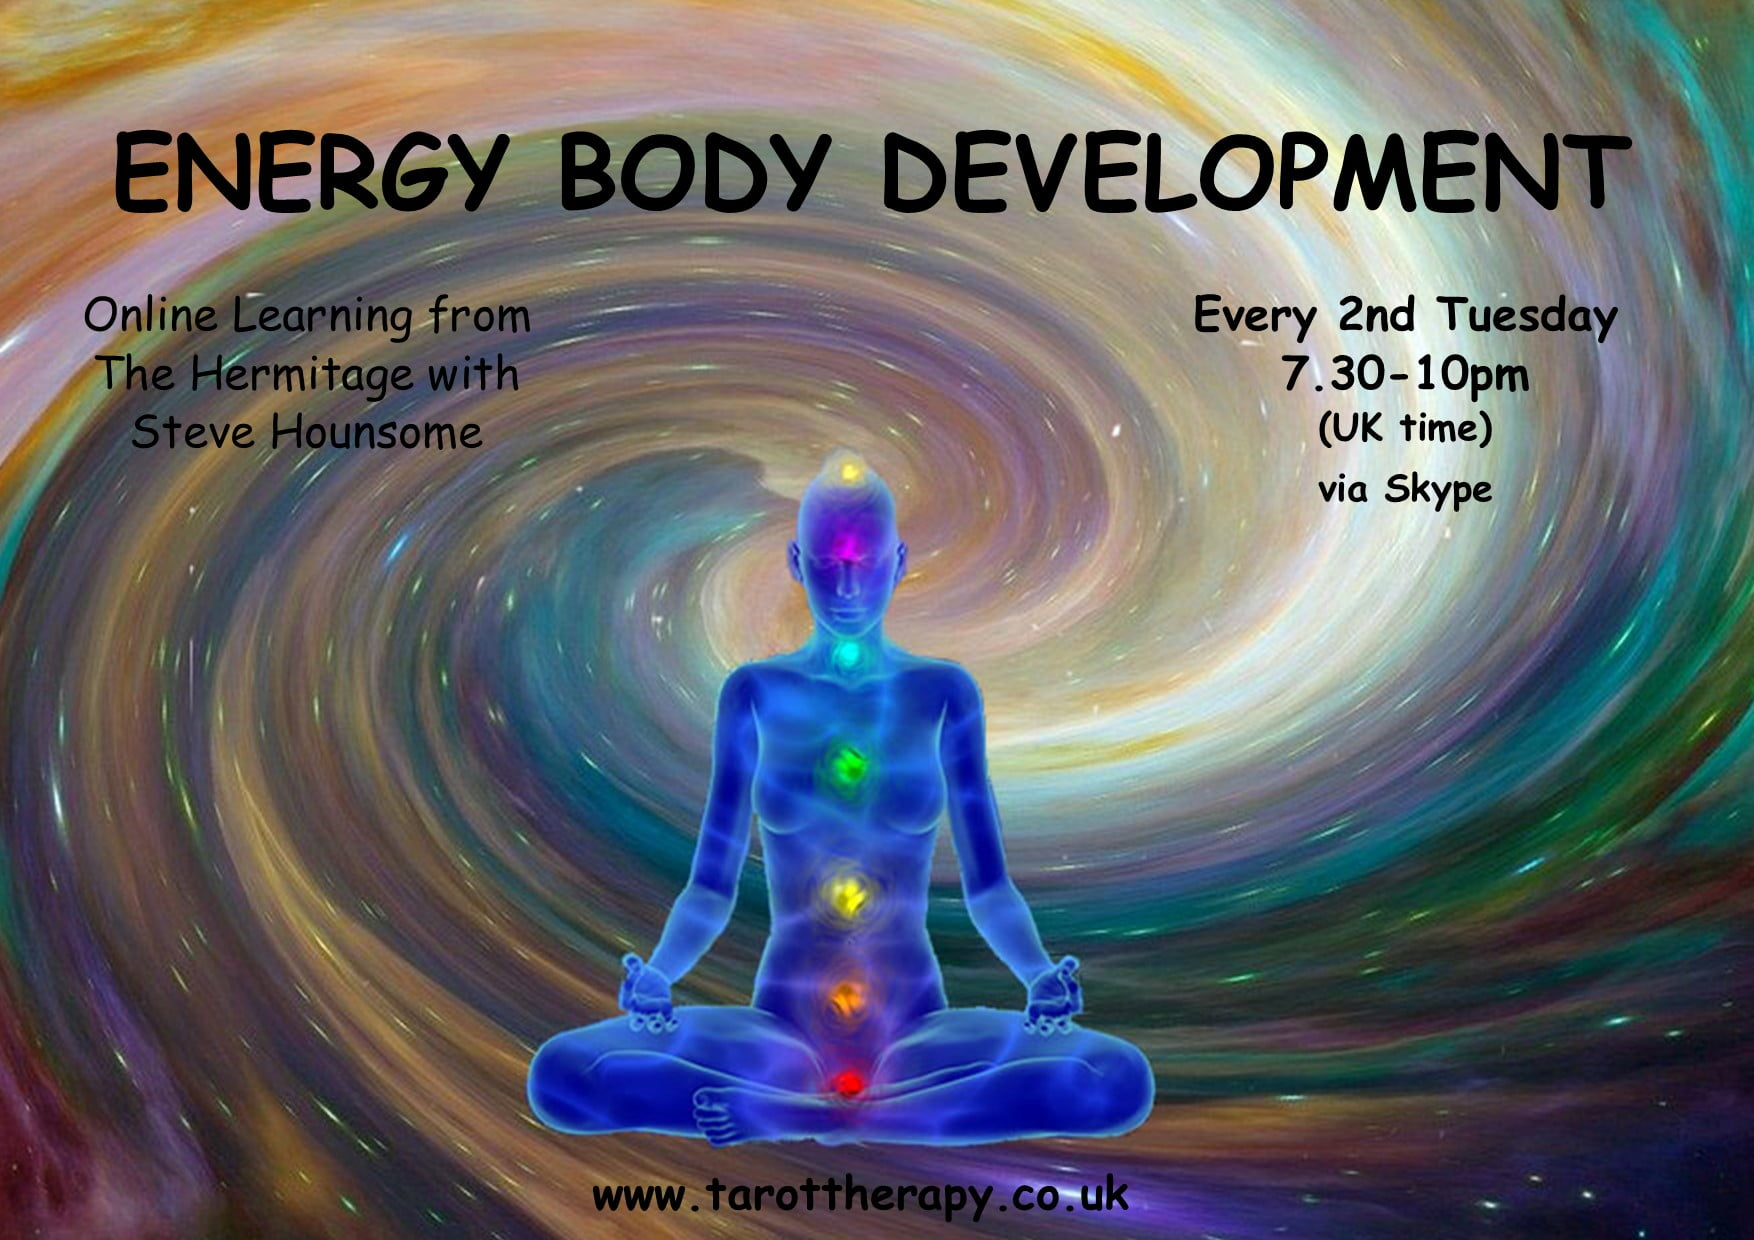 Online Energy Body Development Group with Steve Hounsome